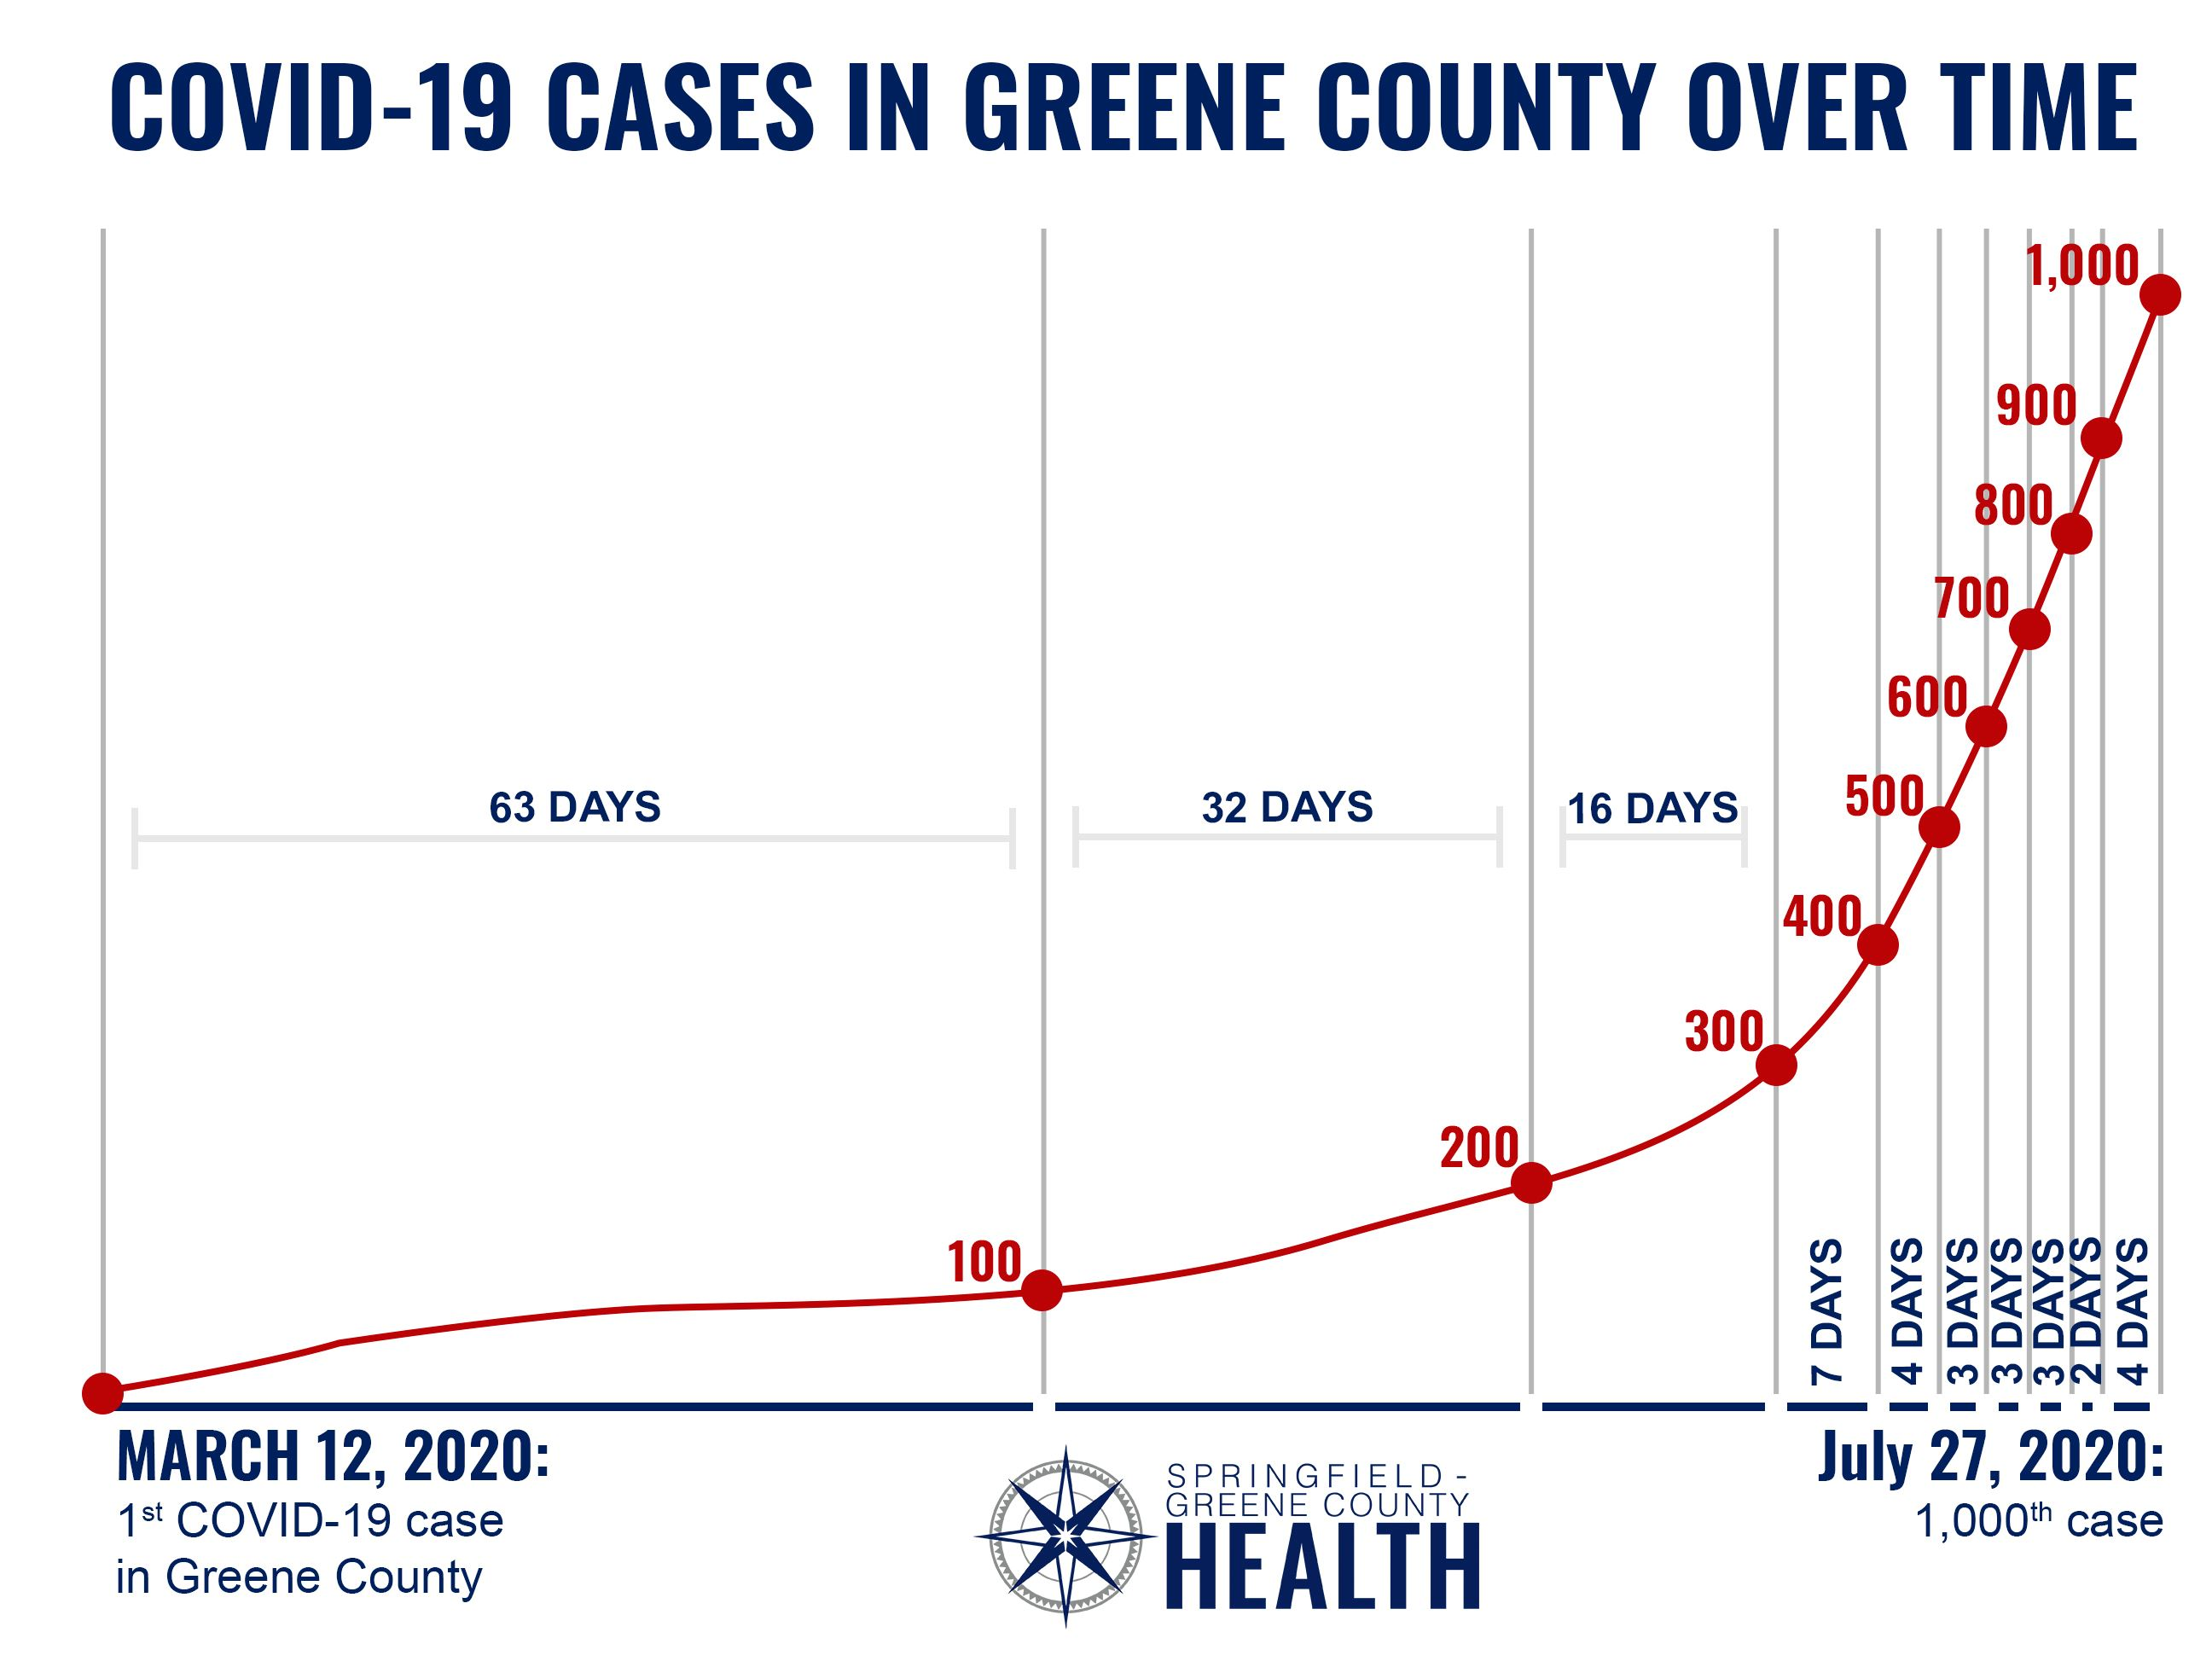 COVID-19 cases in Greene County over time